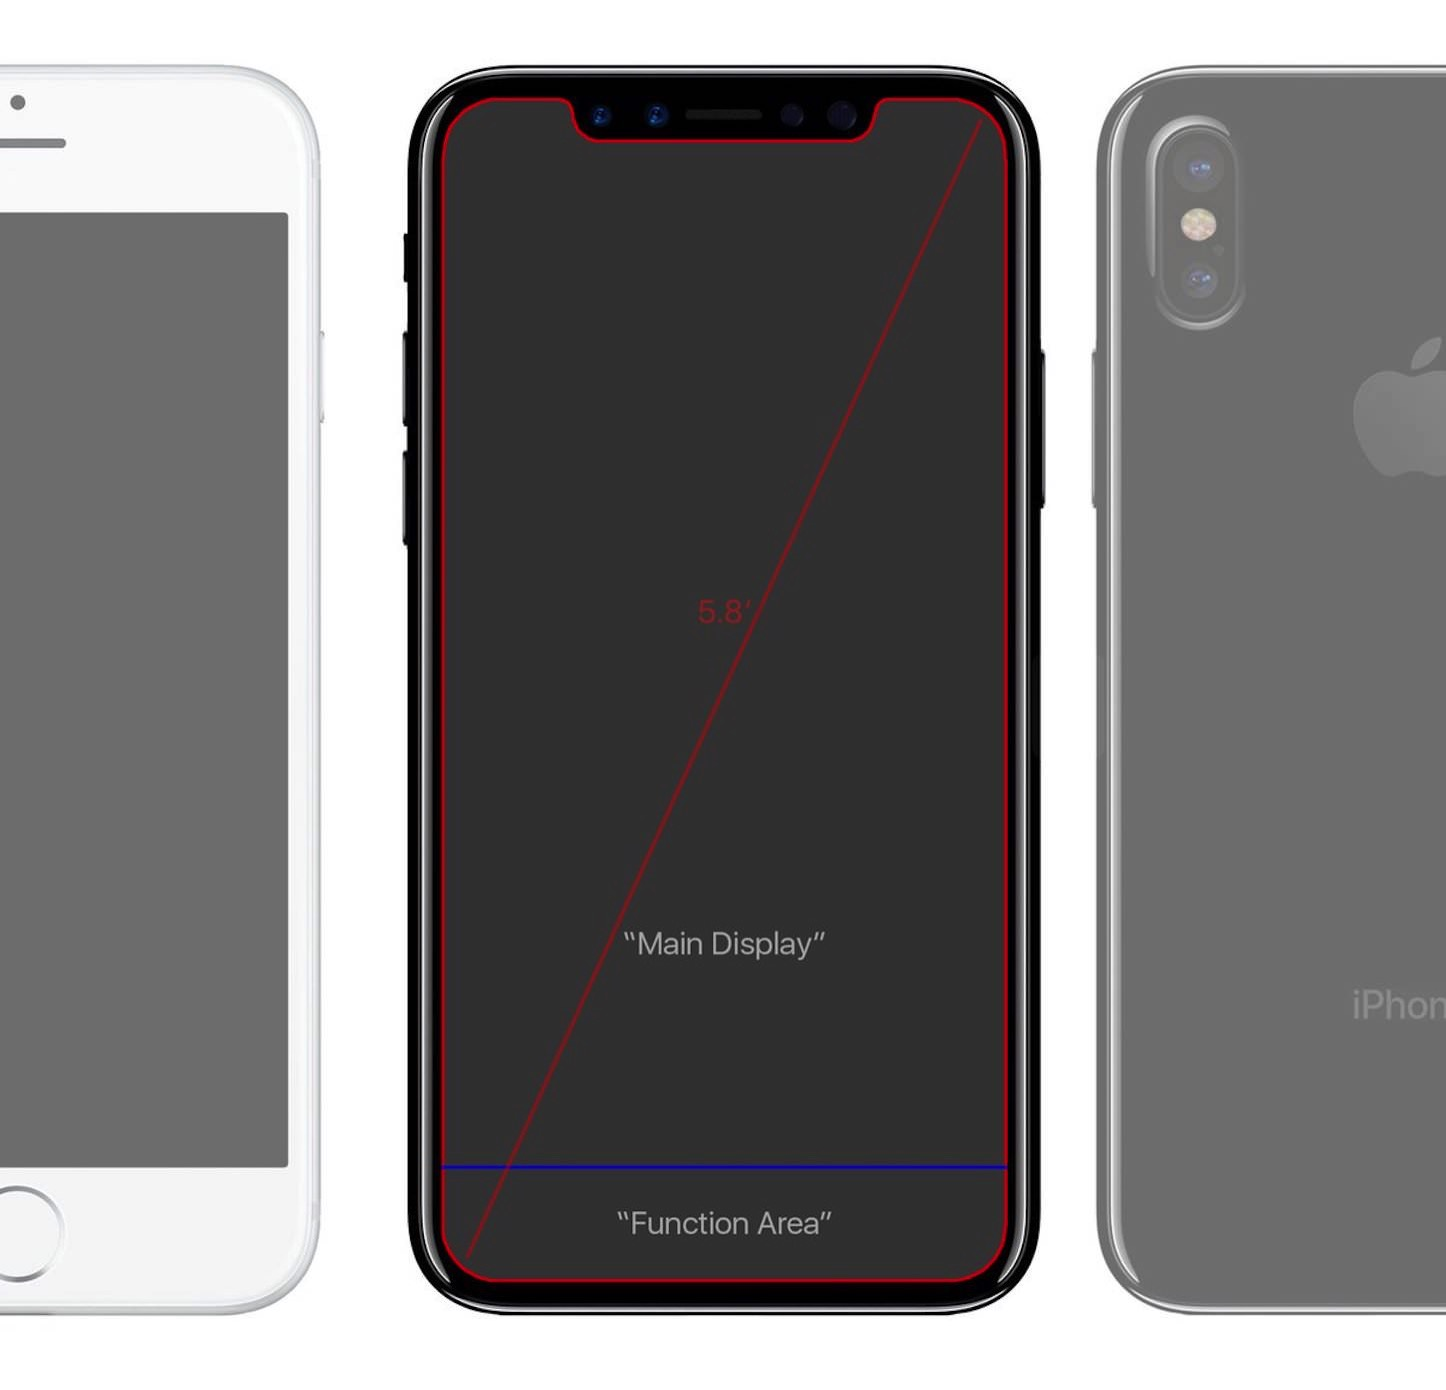 Iphone8 display and function bar